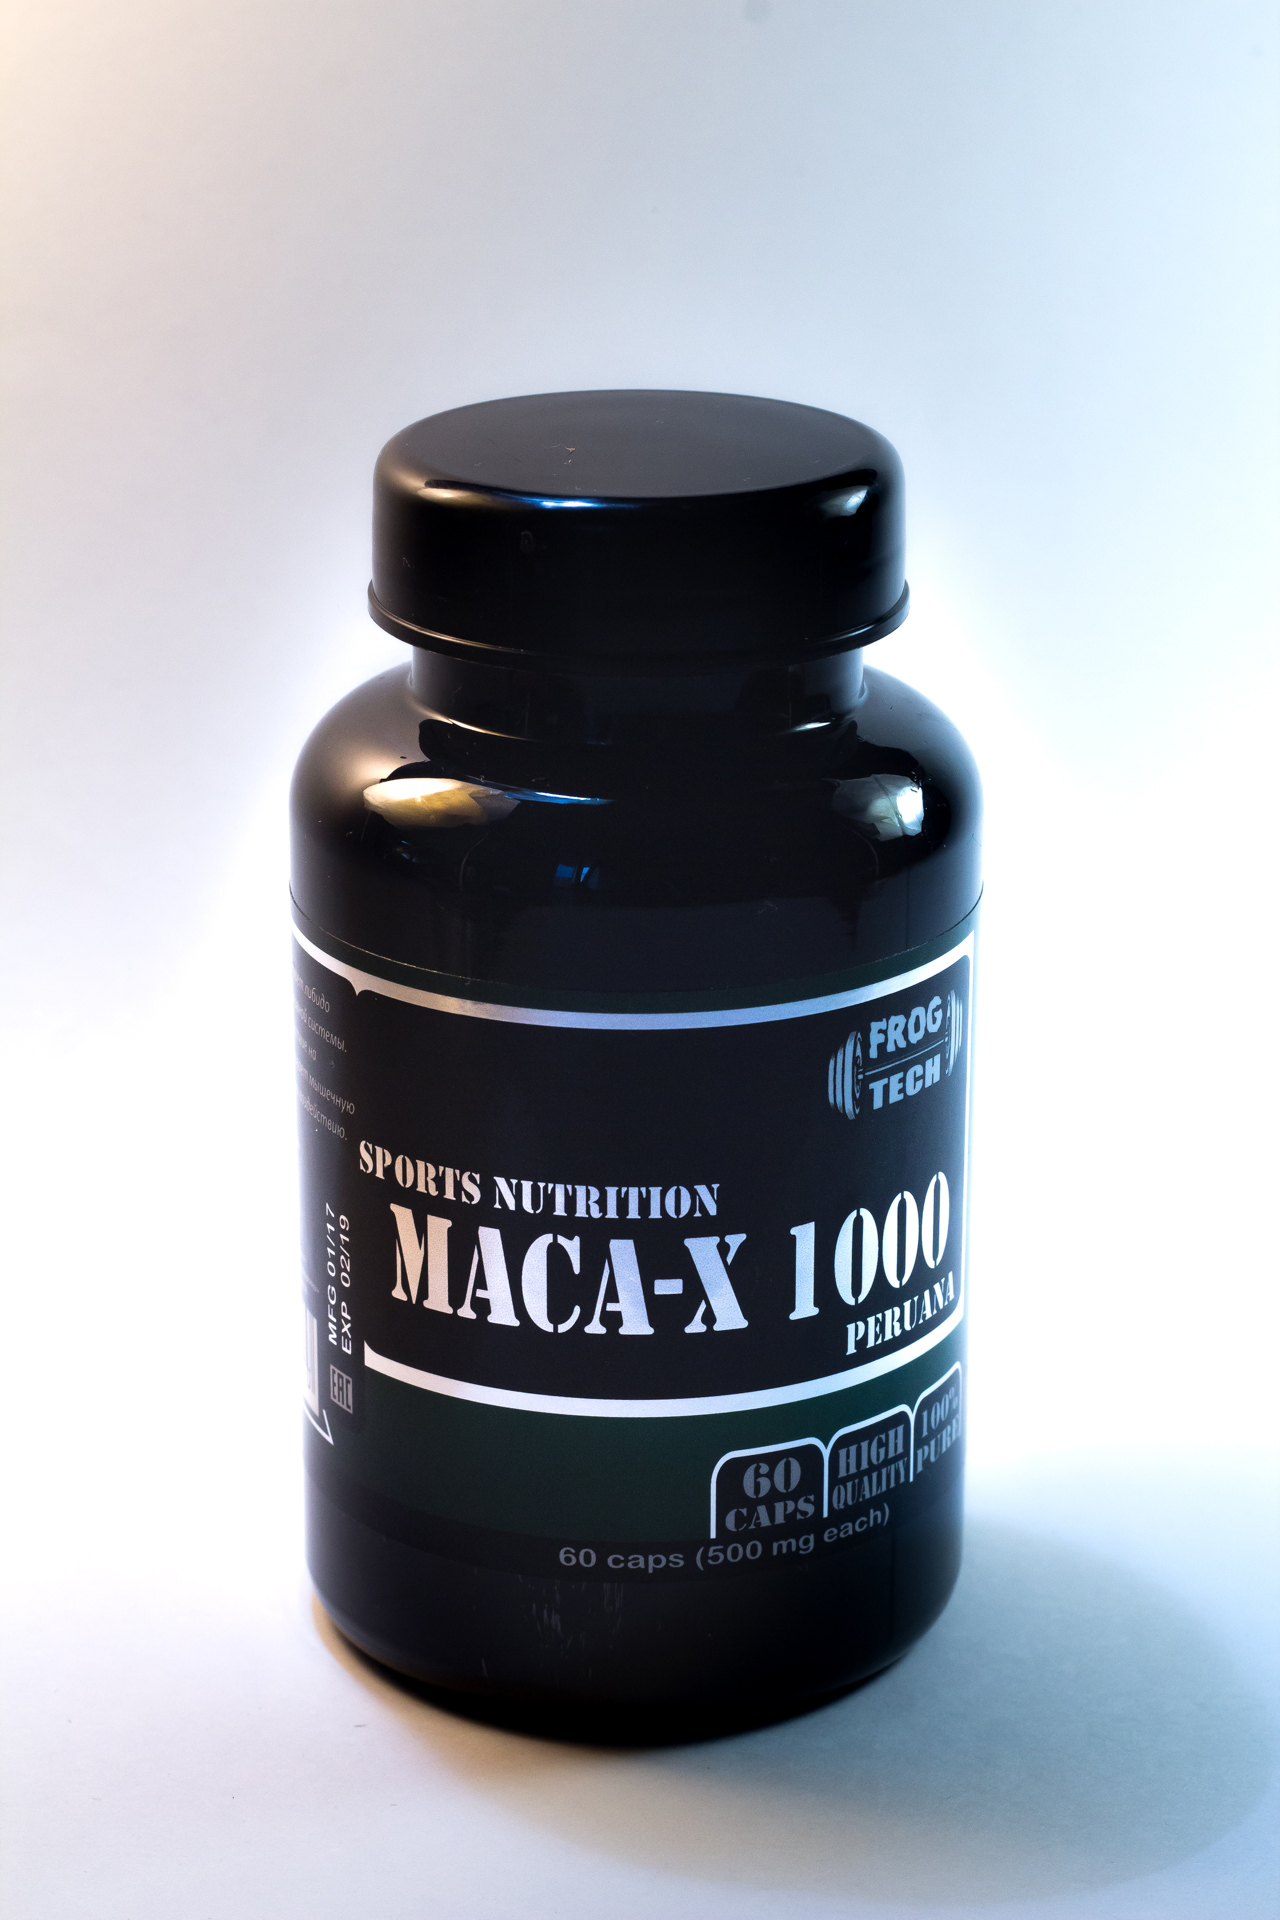 Maca-X Extract 1000 (Frog Tech)